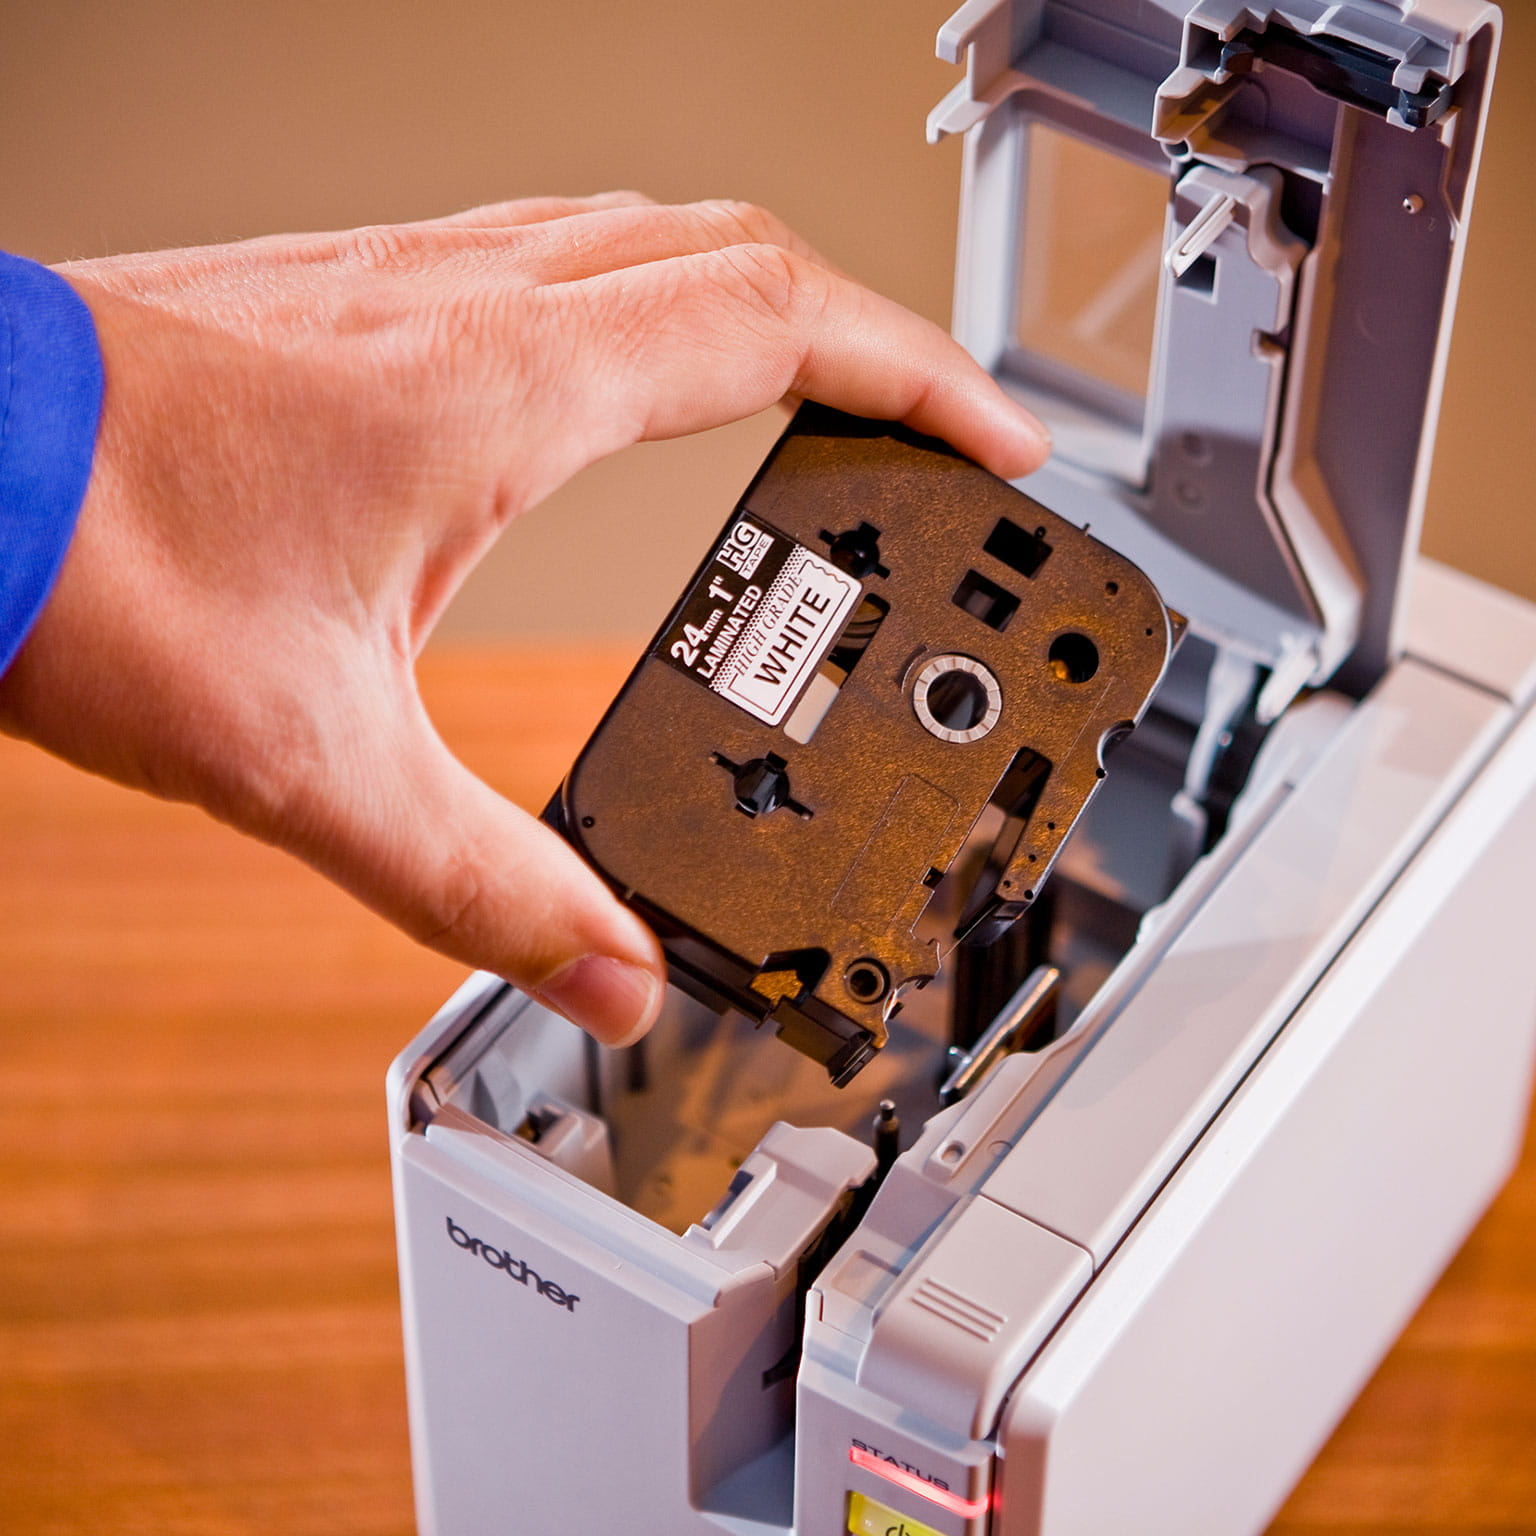 A Brother customer replacing a cartridge on a desktop label printer